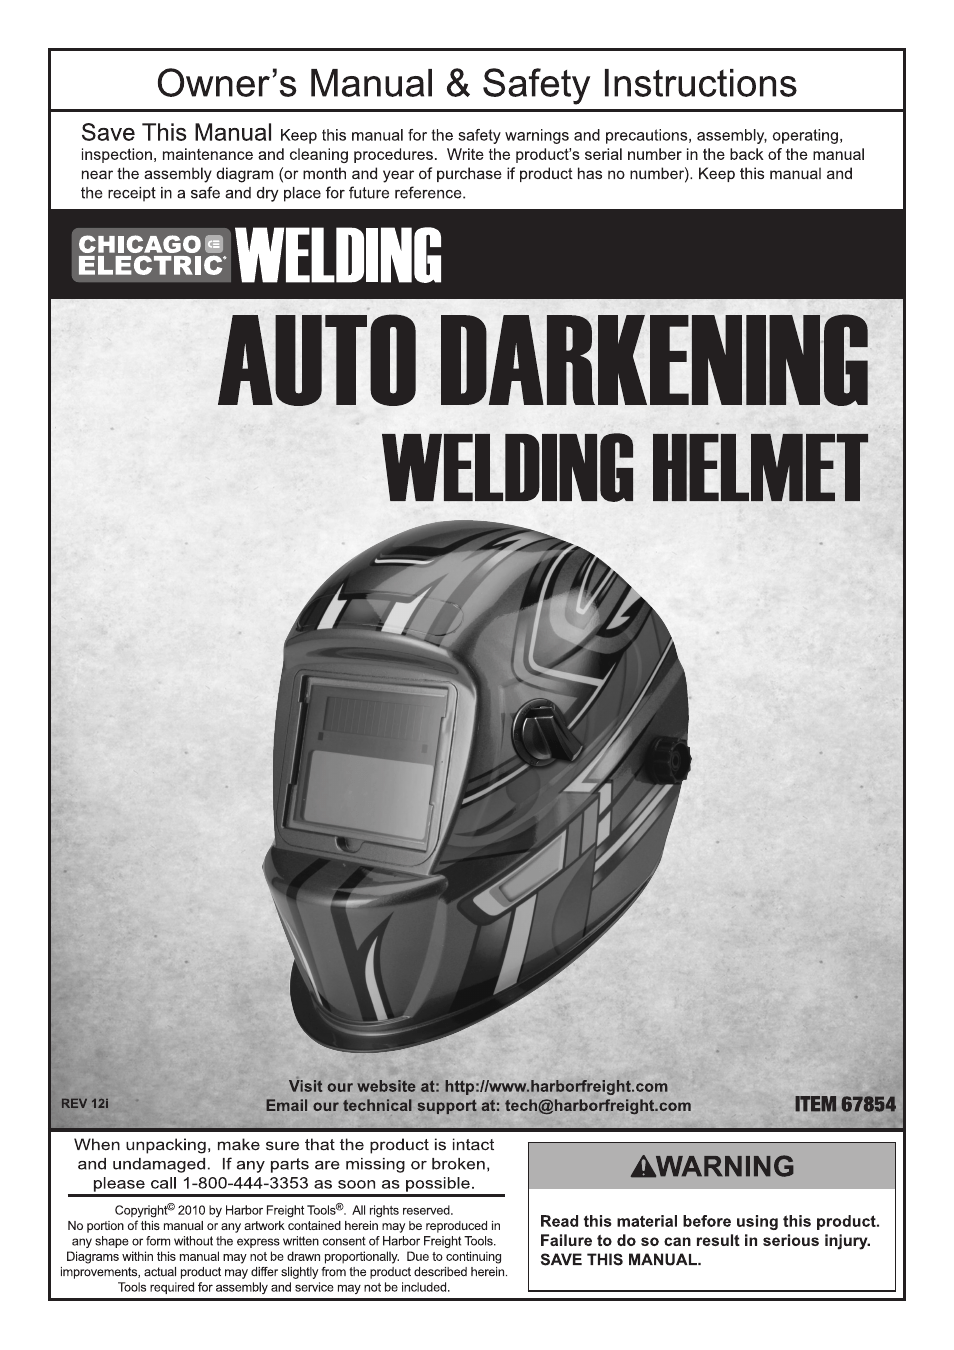 Chicago Electric Auto Darkening Welding Helmet 67854 User